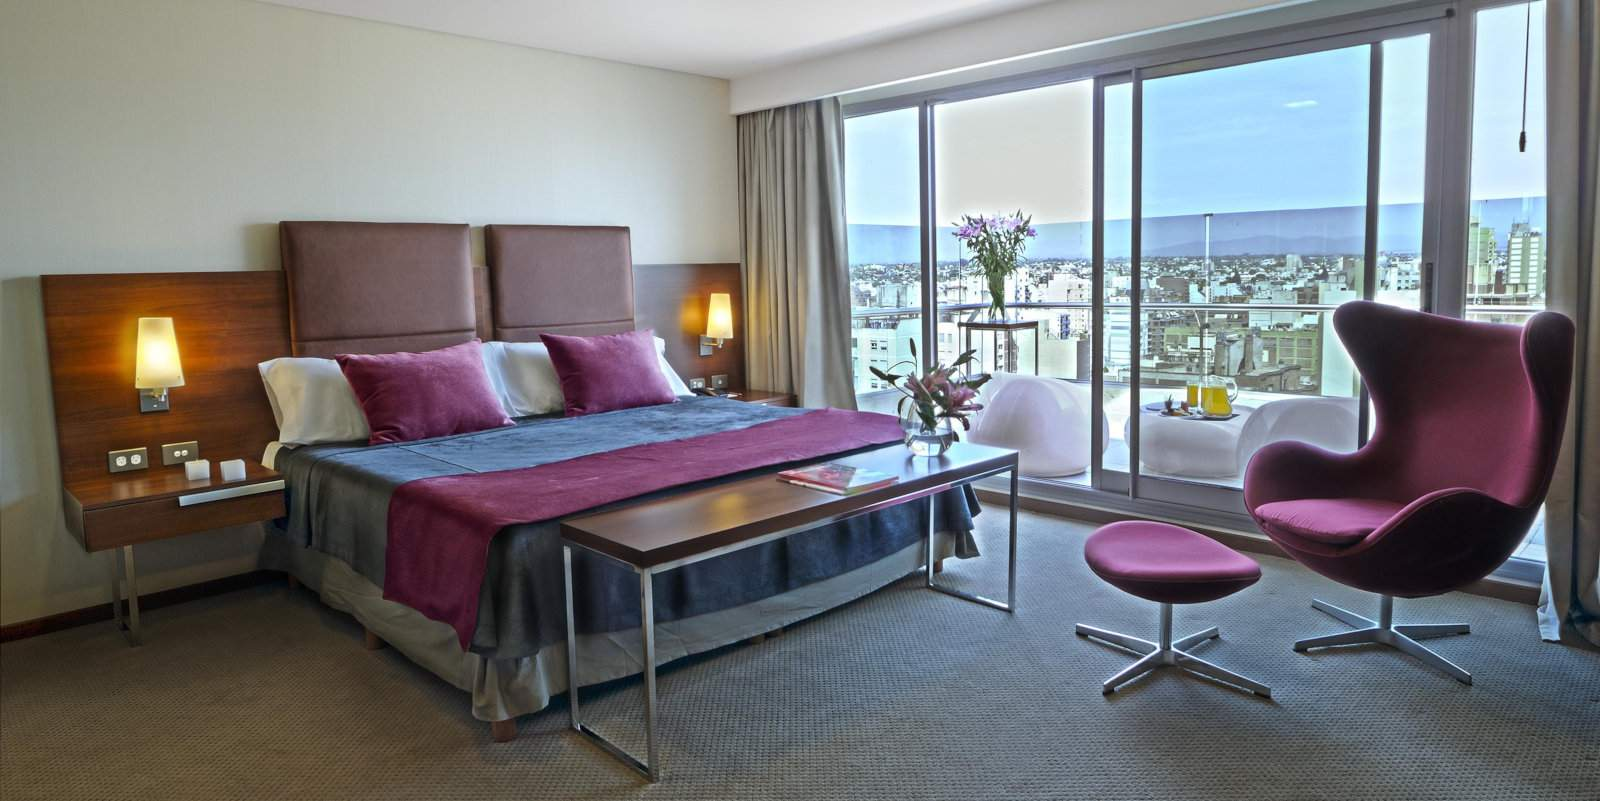 Howard Johnson la Canada Suites are a gorgeous, and gay friendly, place to stay in Cordoba.